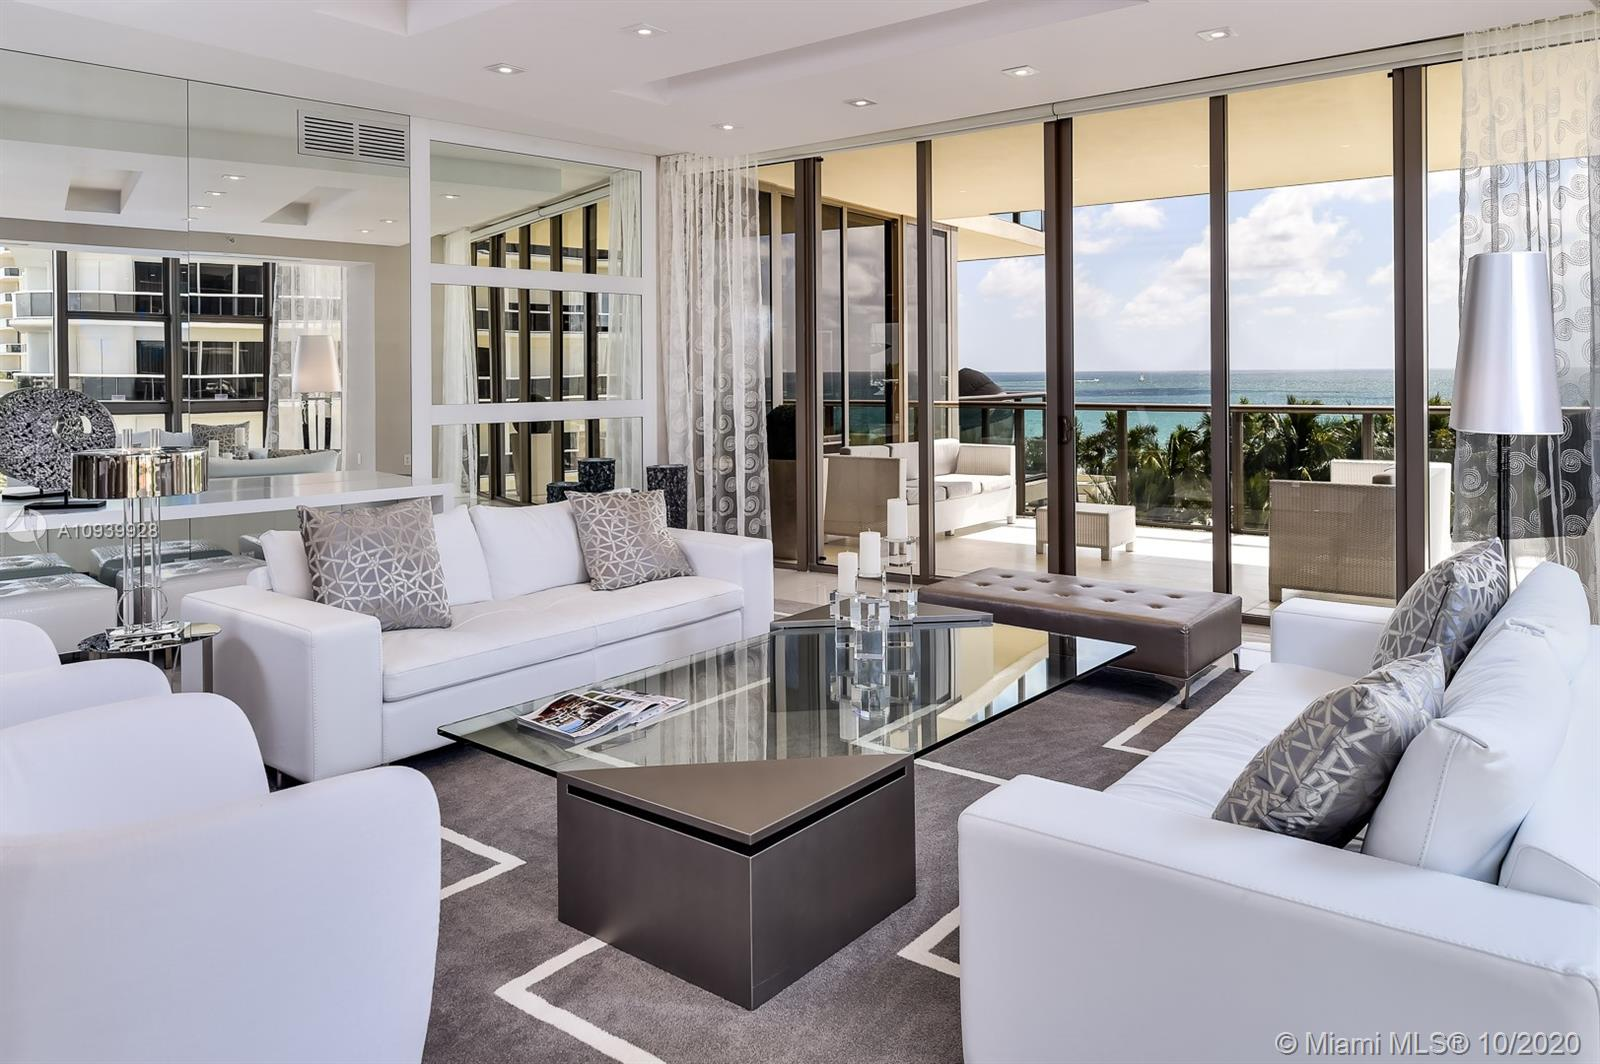 9701 Collins Ave, Unit #601S Luxury Real Estate